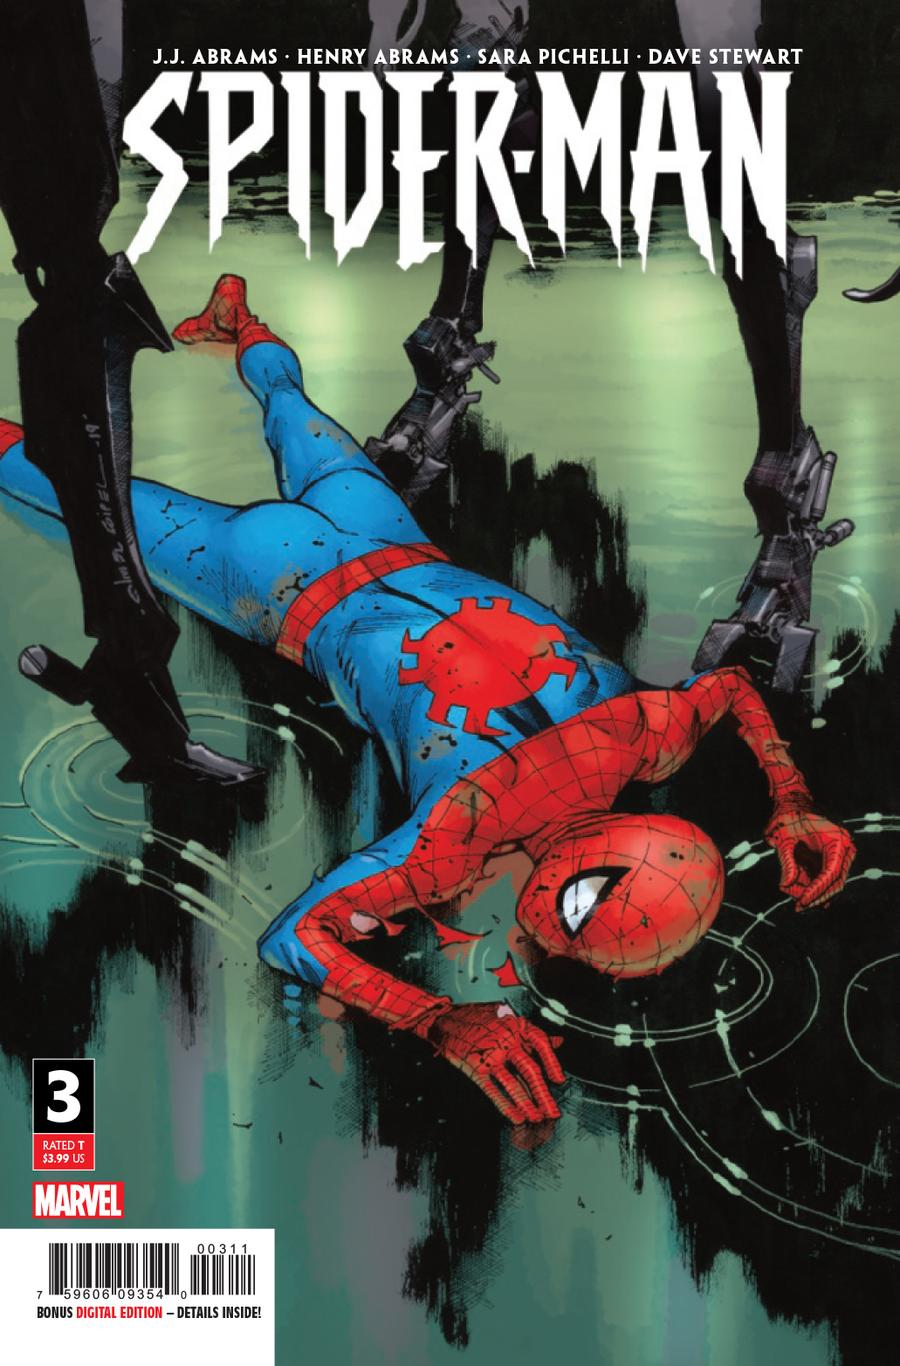 Spider-Man Vol 3 #3 Cover A 1st Ptg Regular Olivier Coipel Cover